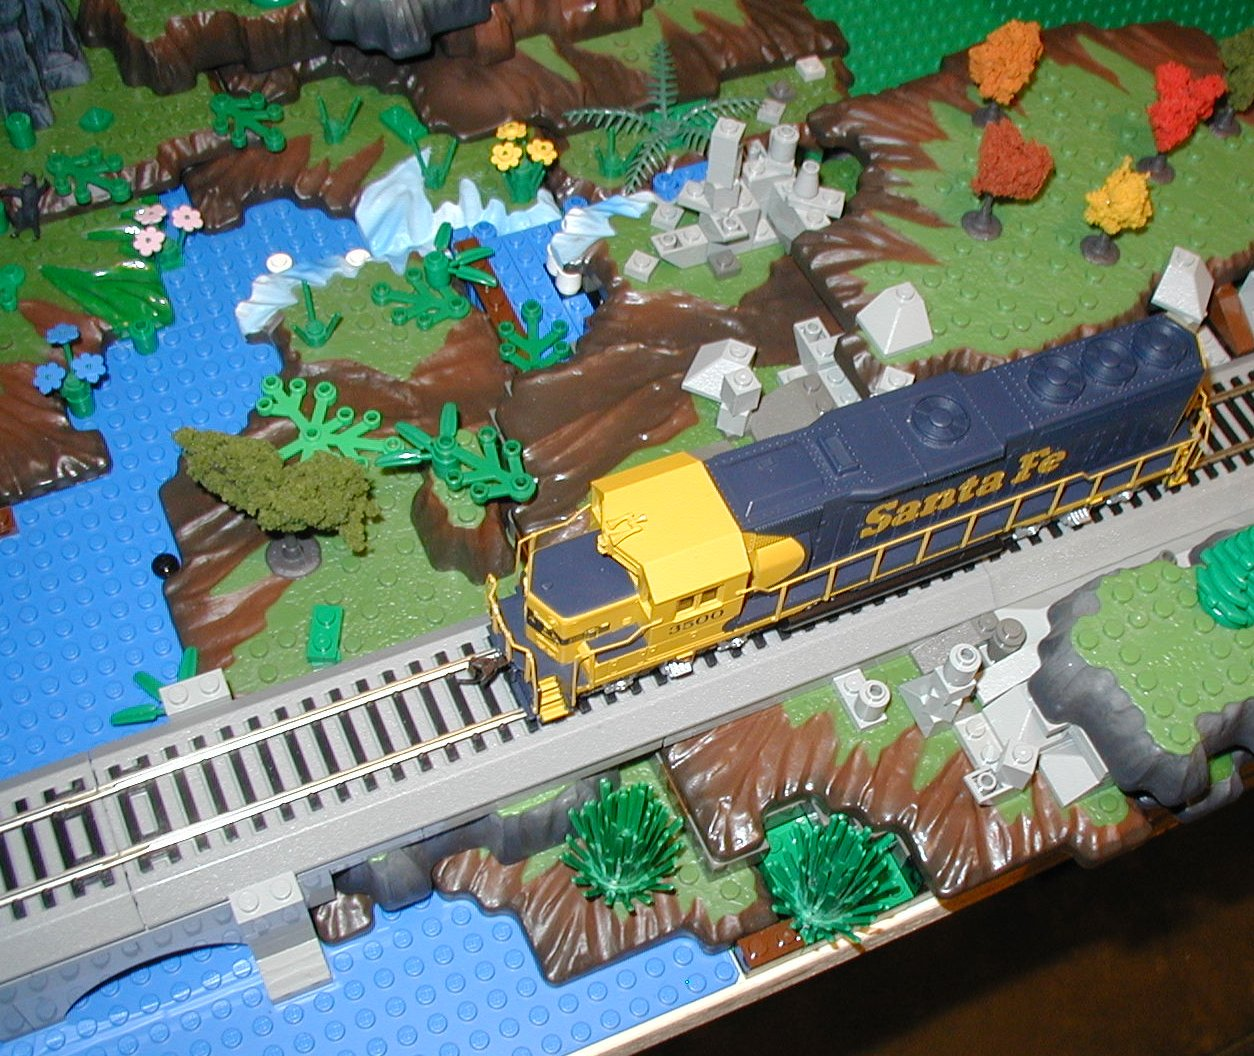 2007-01-04-thr-lego-mega-ho-trains2.jpg